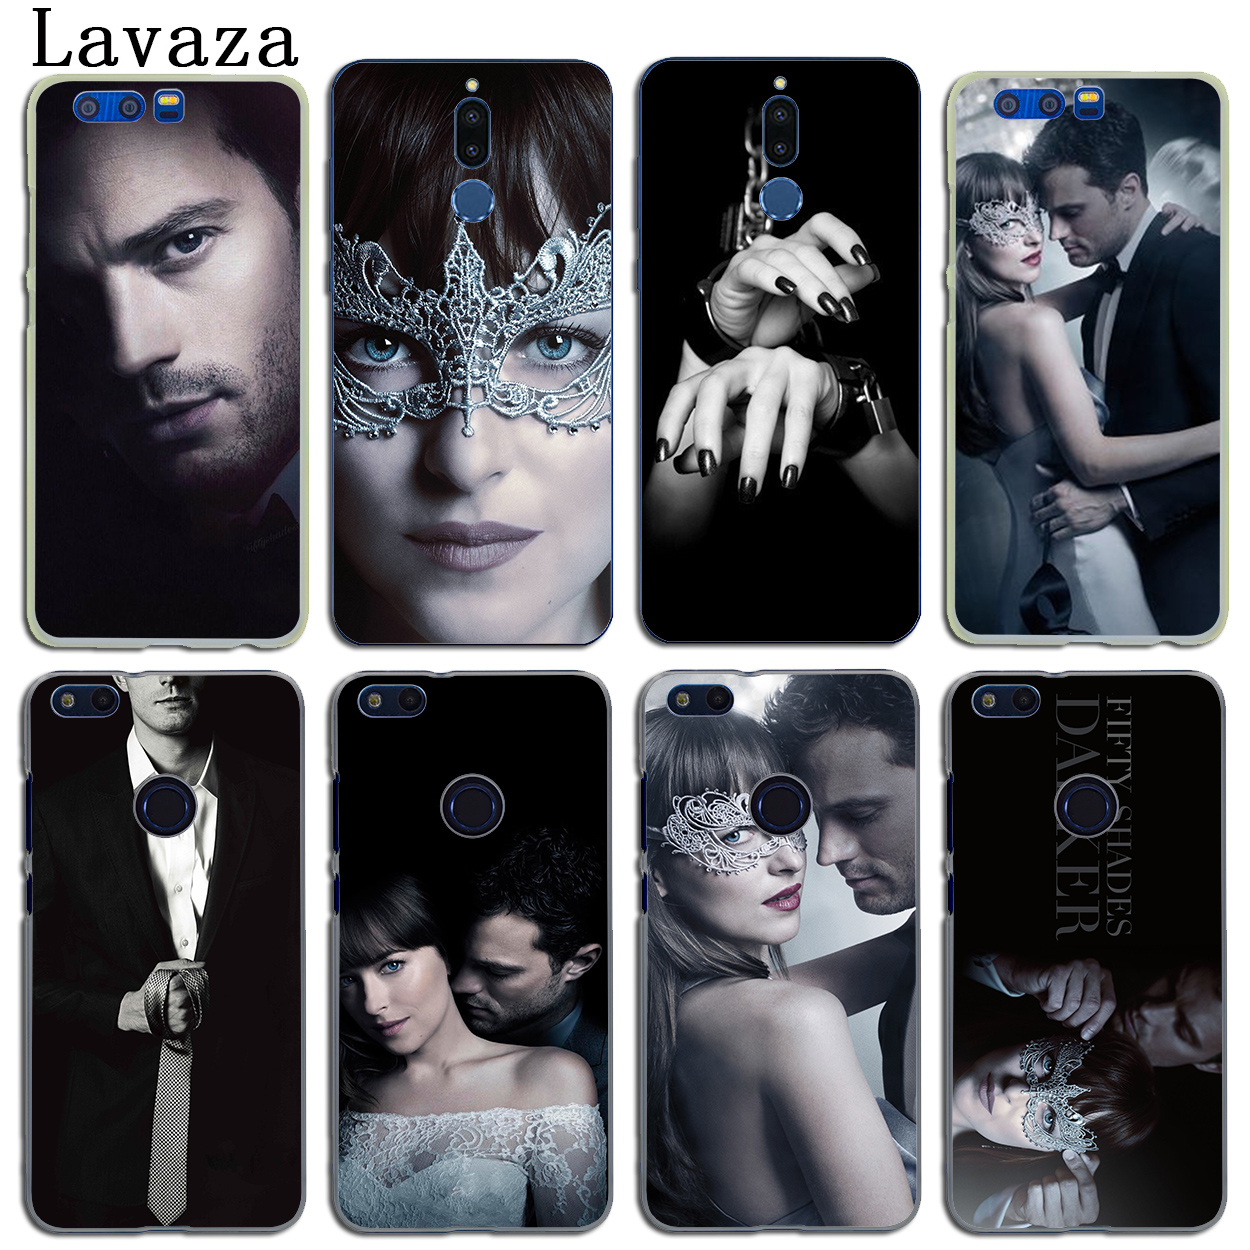 Fifty Shades Darker of grey freed Case for Huawei Y6 Y5 Y3 II Y7 2017 2018 Nova 2 Plus 2S 2i Honor 10 9 8 Lite 7 6A 7X 6X 6C Pro